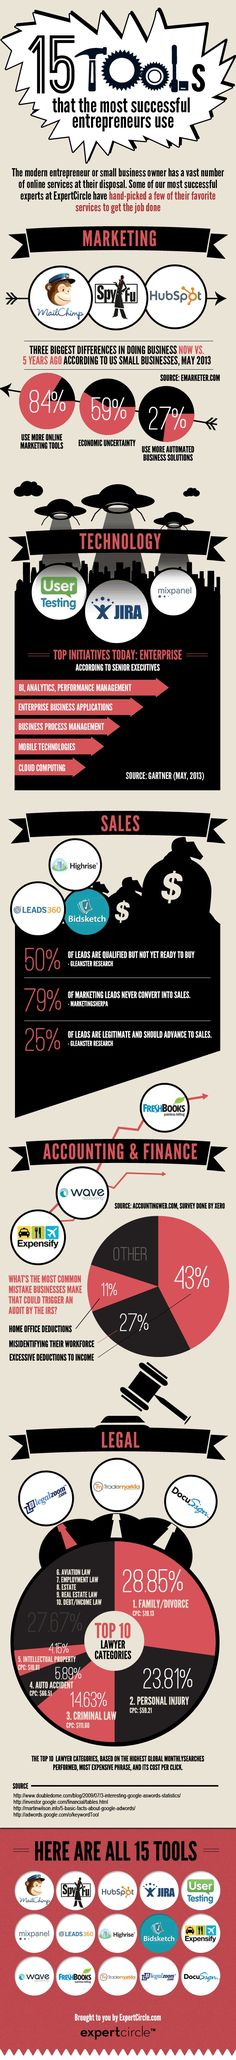 15 Tools That the Most Successful Entrepreneurs Use [Infographic] : MarketingProfs Article